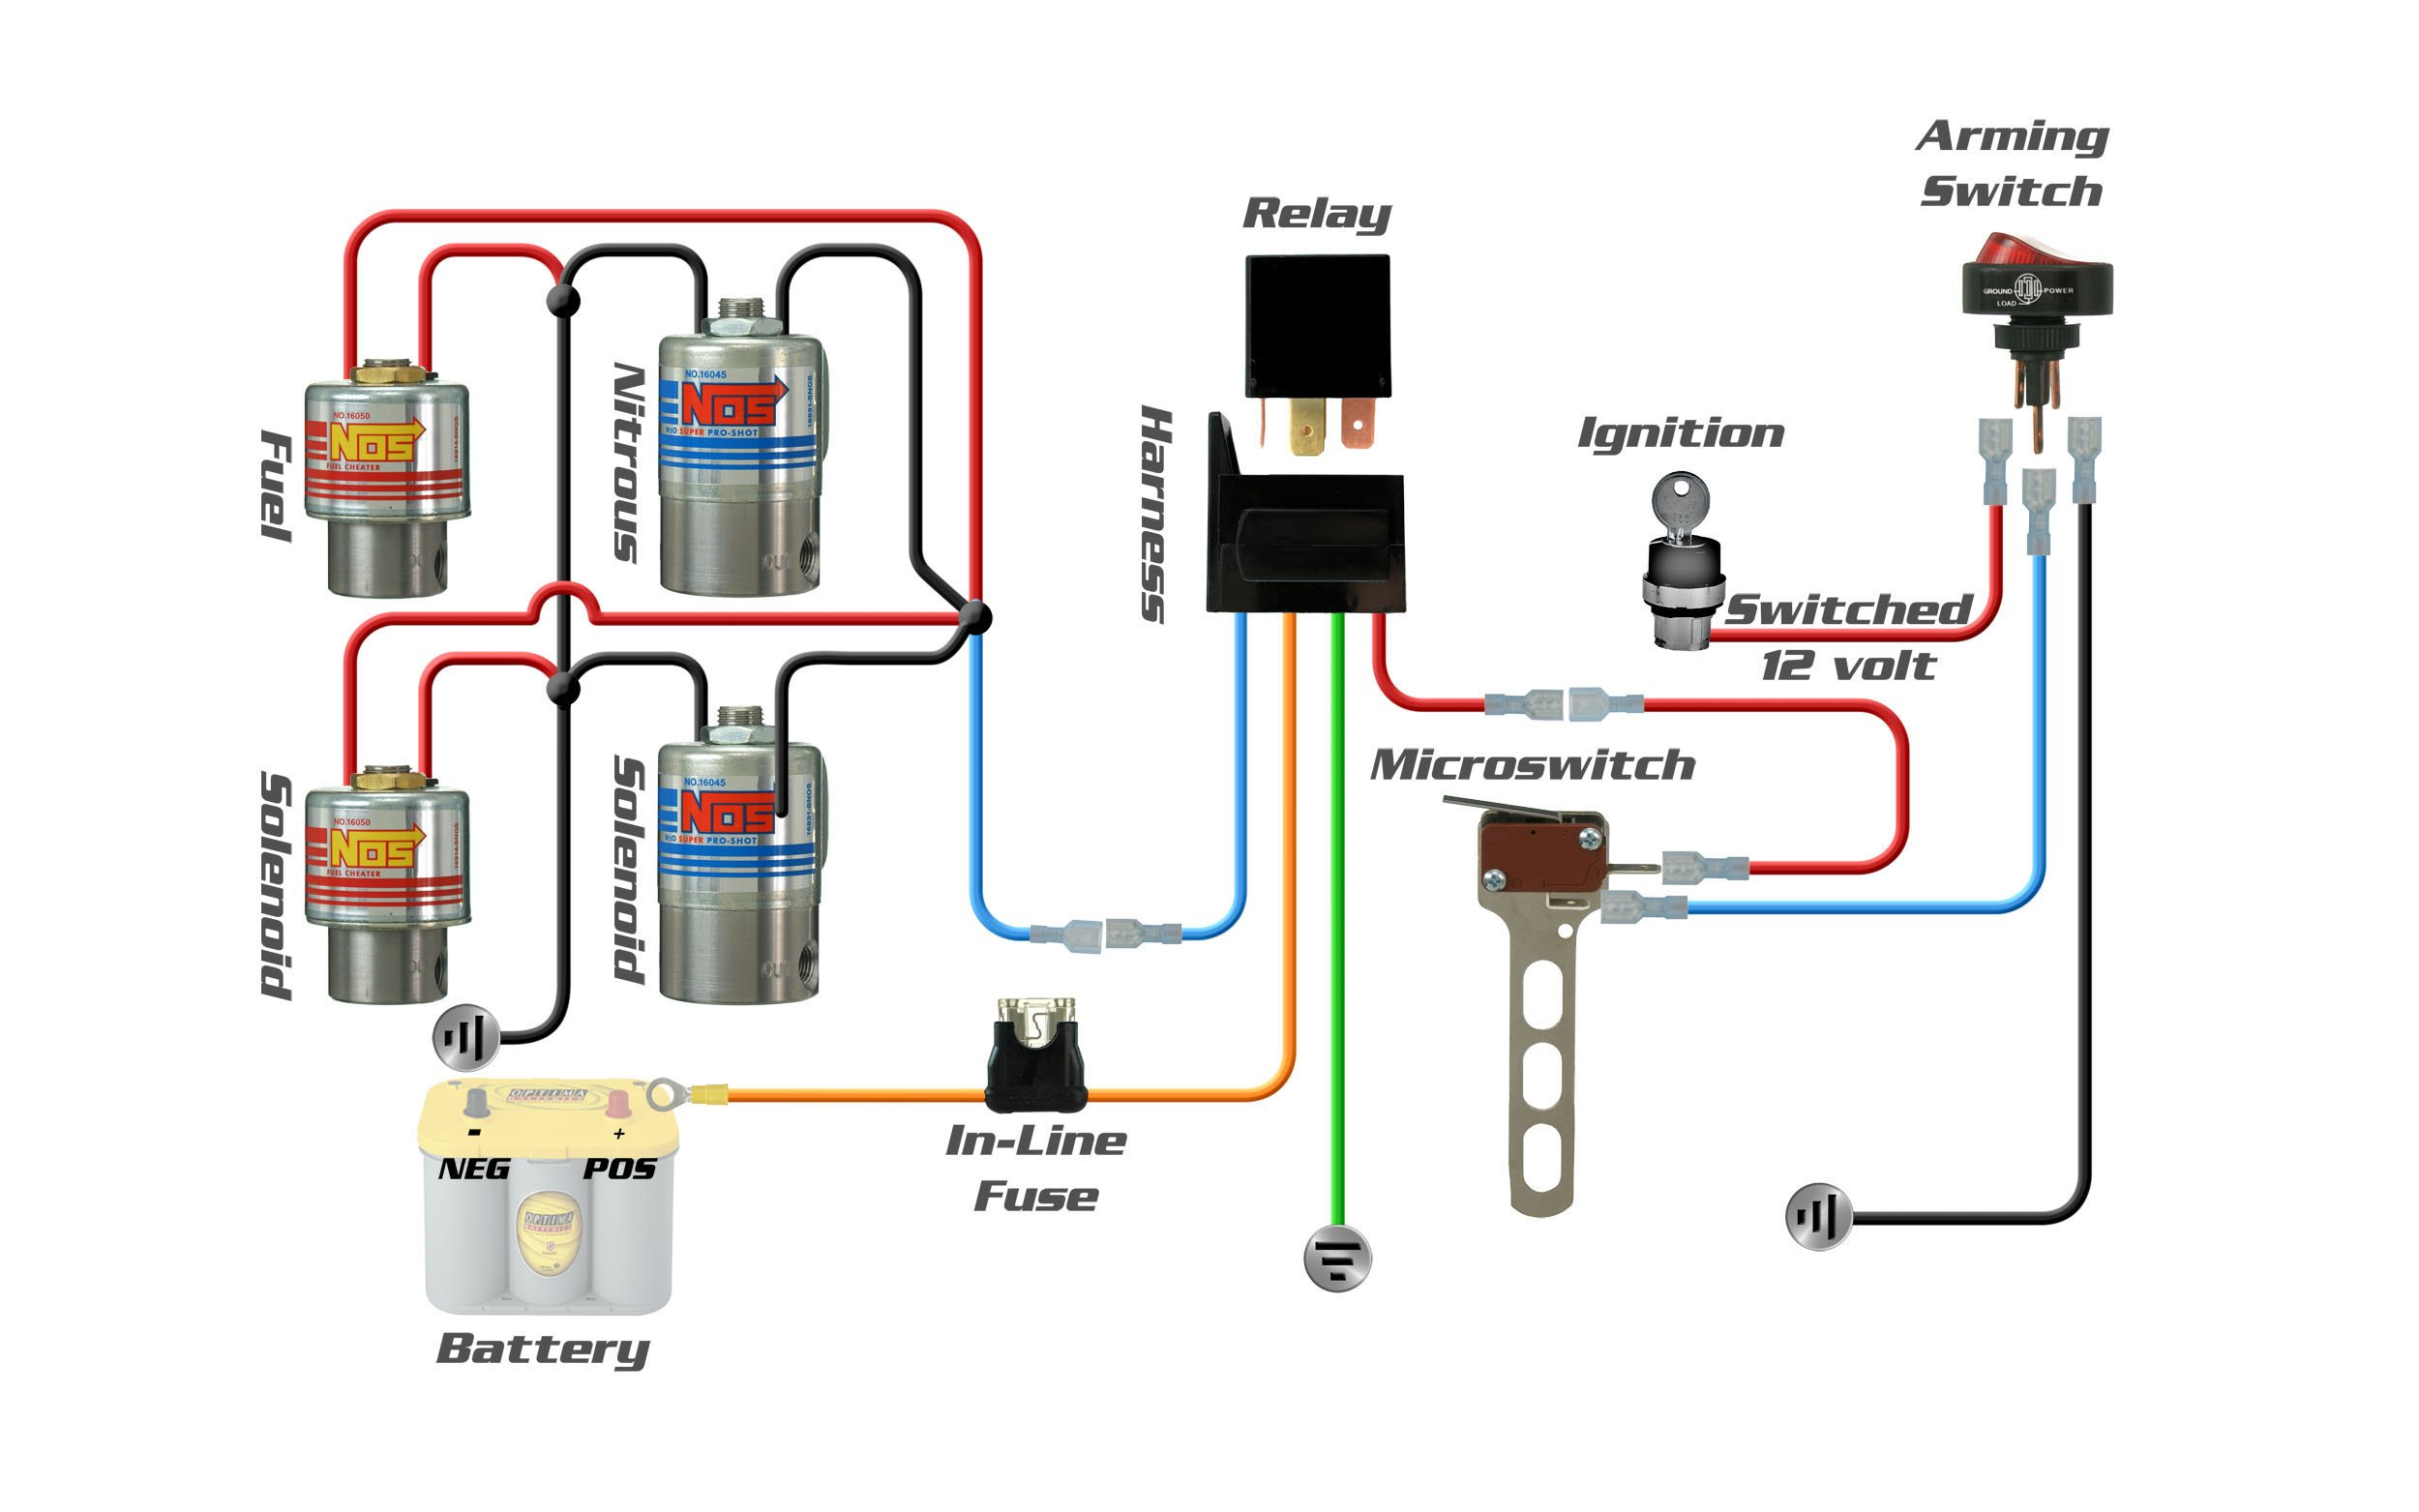 nitrous oxide wiring diagram wire two way switch light 2 nos installation and tuning videos holley blog